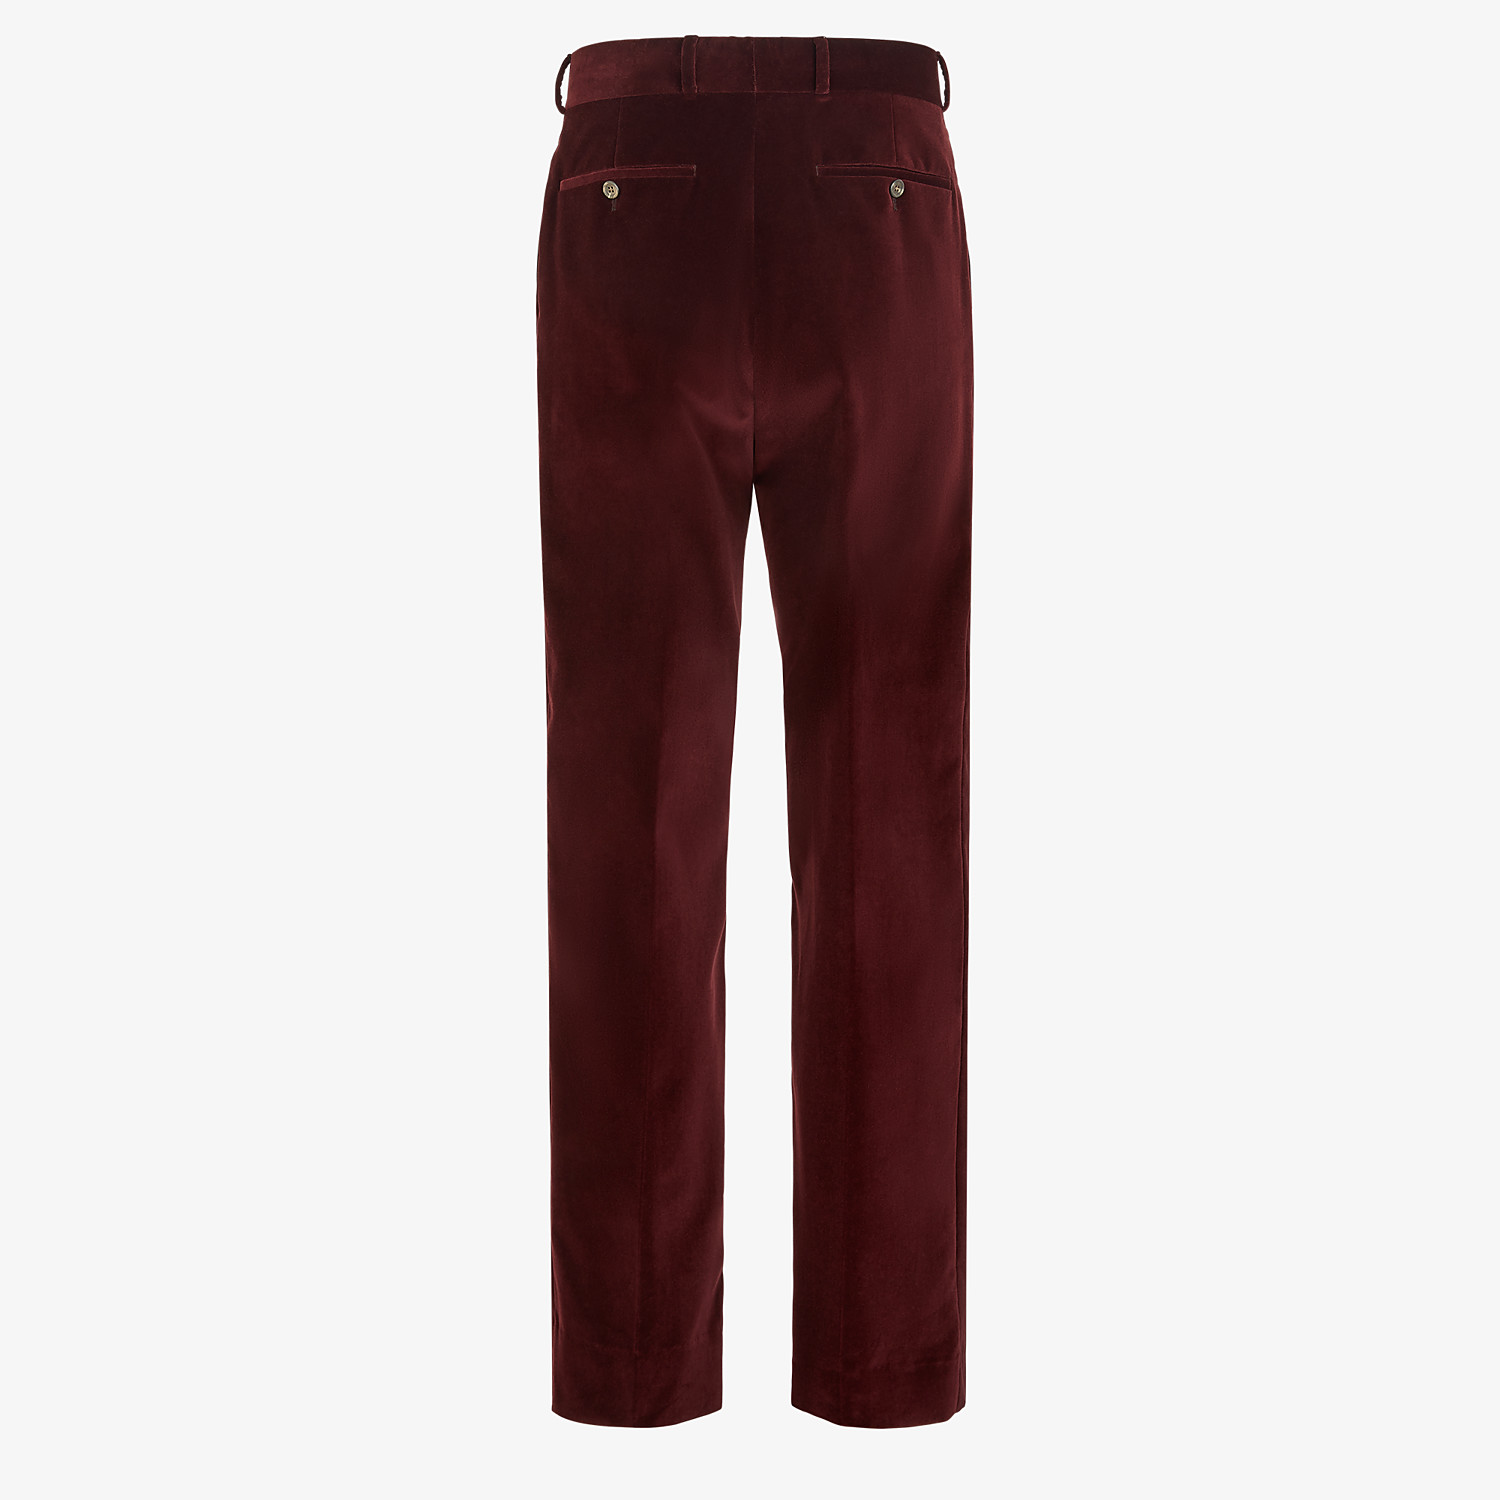 FENDI TROUSERS - Burgundy velvet trousers - view 2 detail